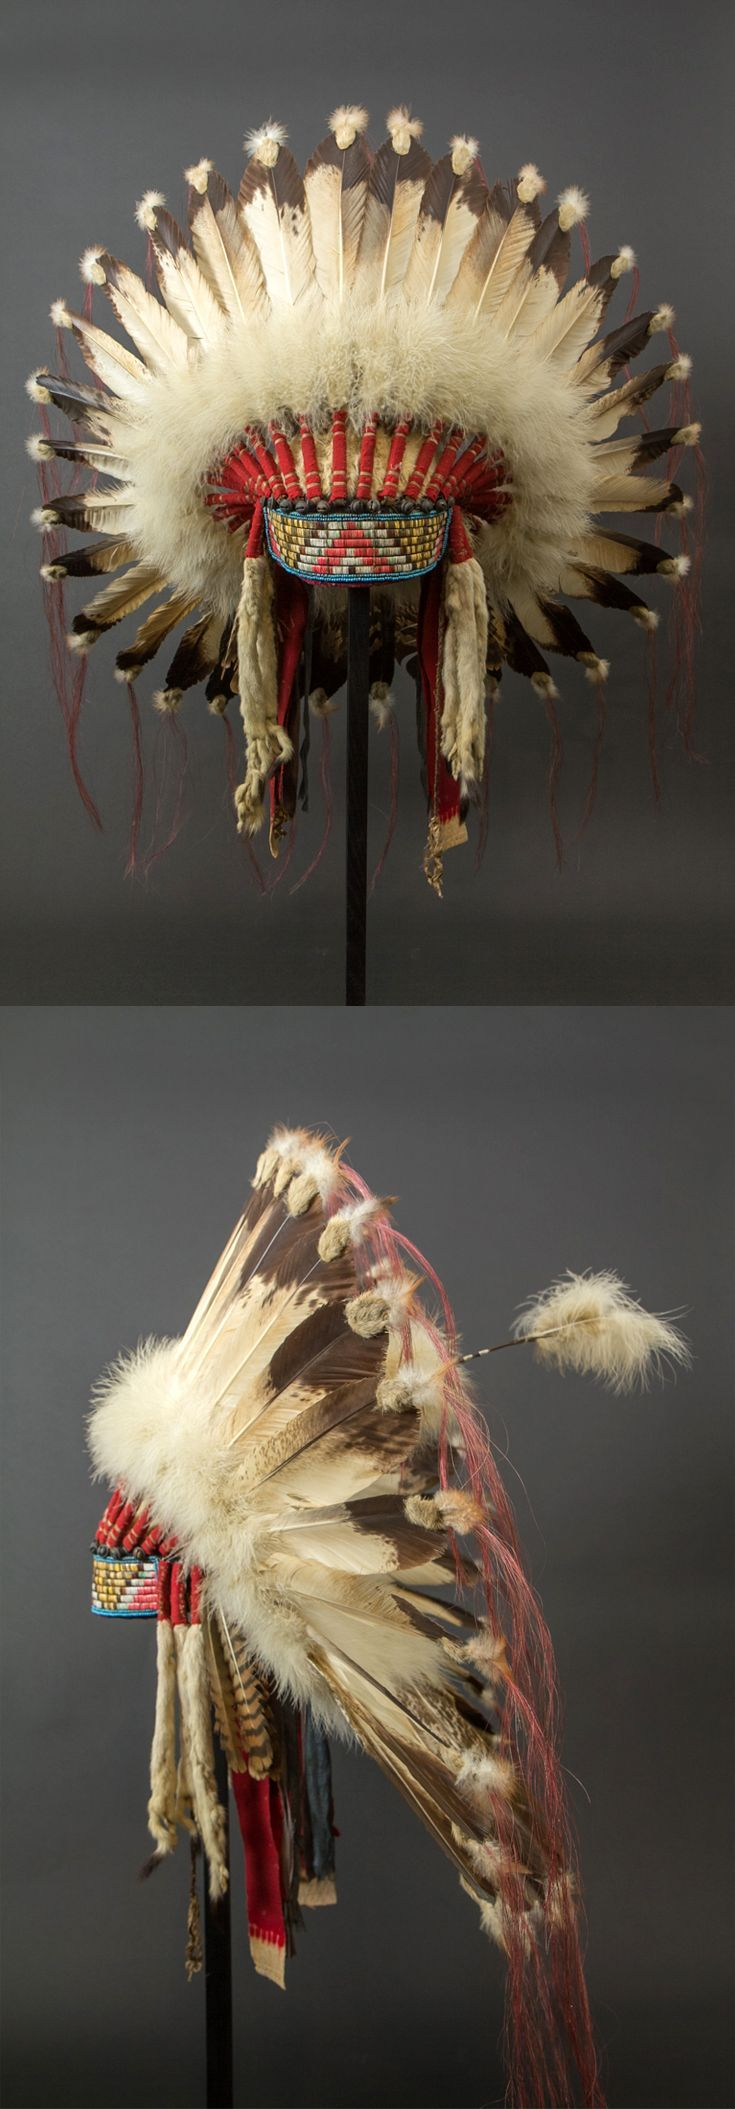 Warrior's headdress | Sioux / Plains Indians (USA) | 32 eagle feathers, horsehair, fabric, beads, quills, fur | ca. 1920 - 1930: